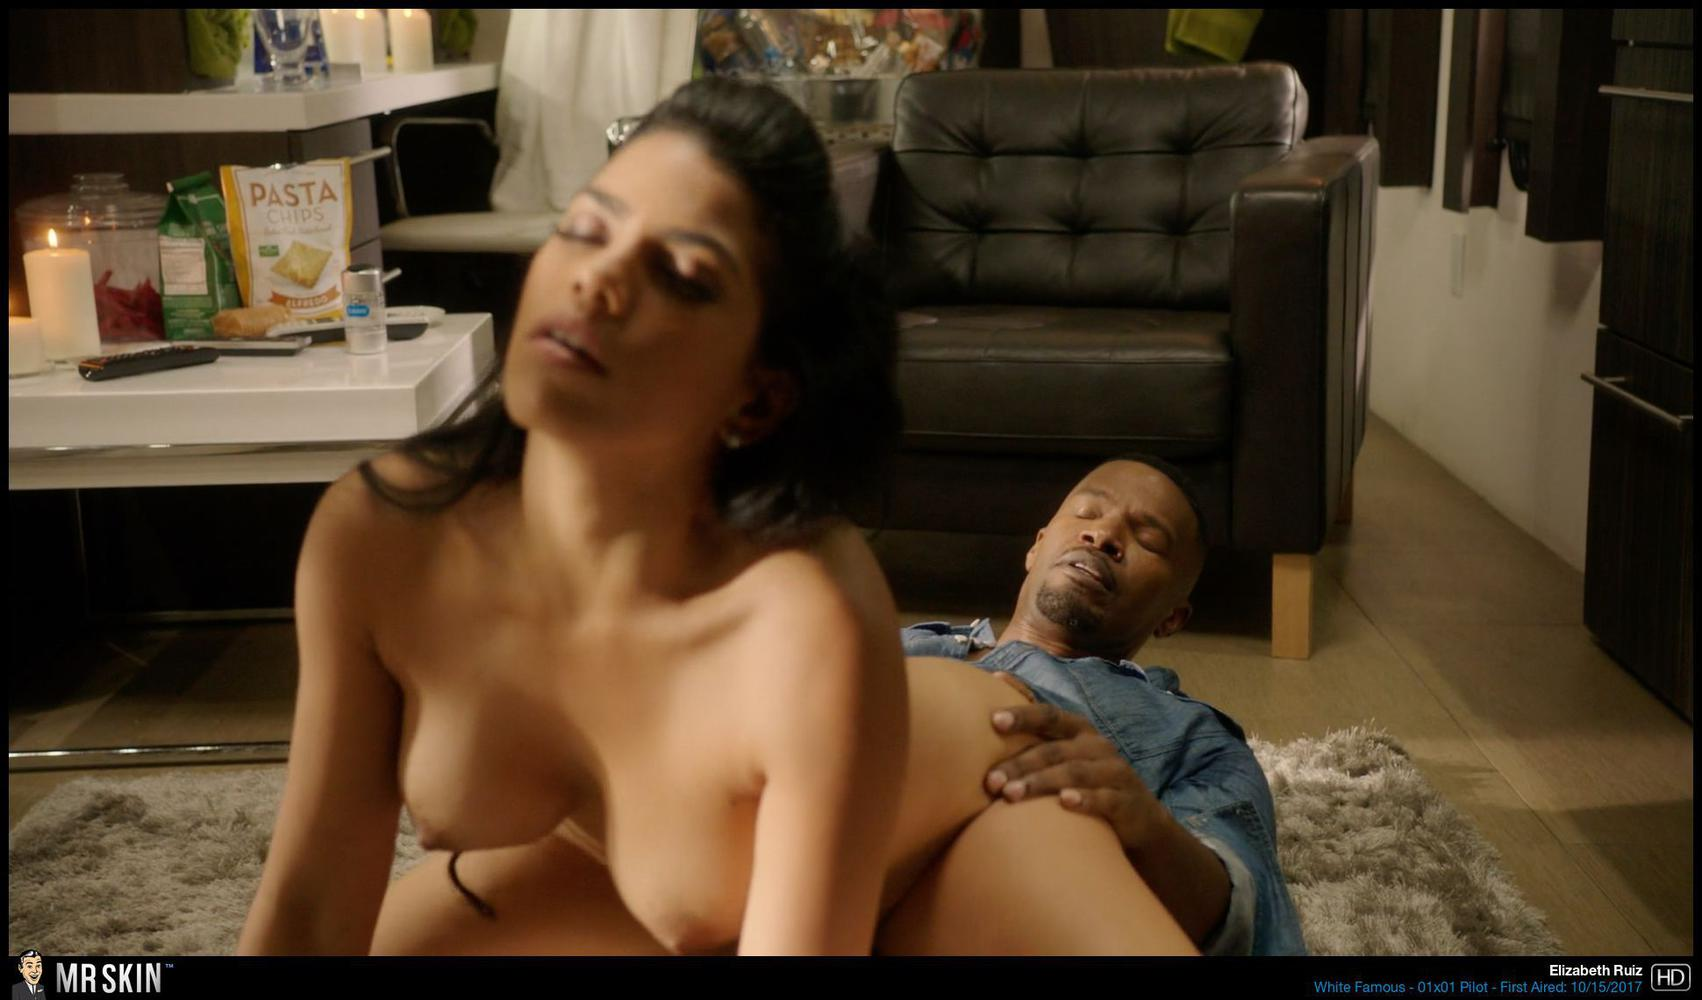 Tv Nudity Report The Deuce, Ray Donovan, White Famous -2782